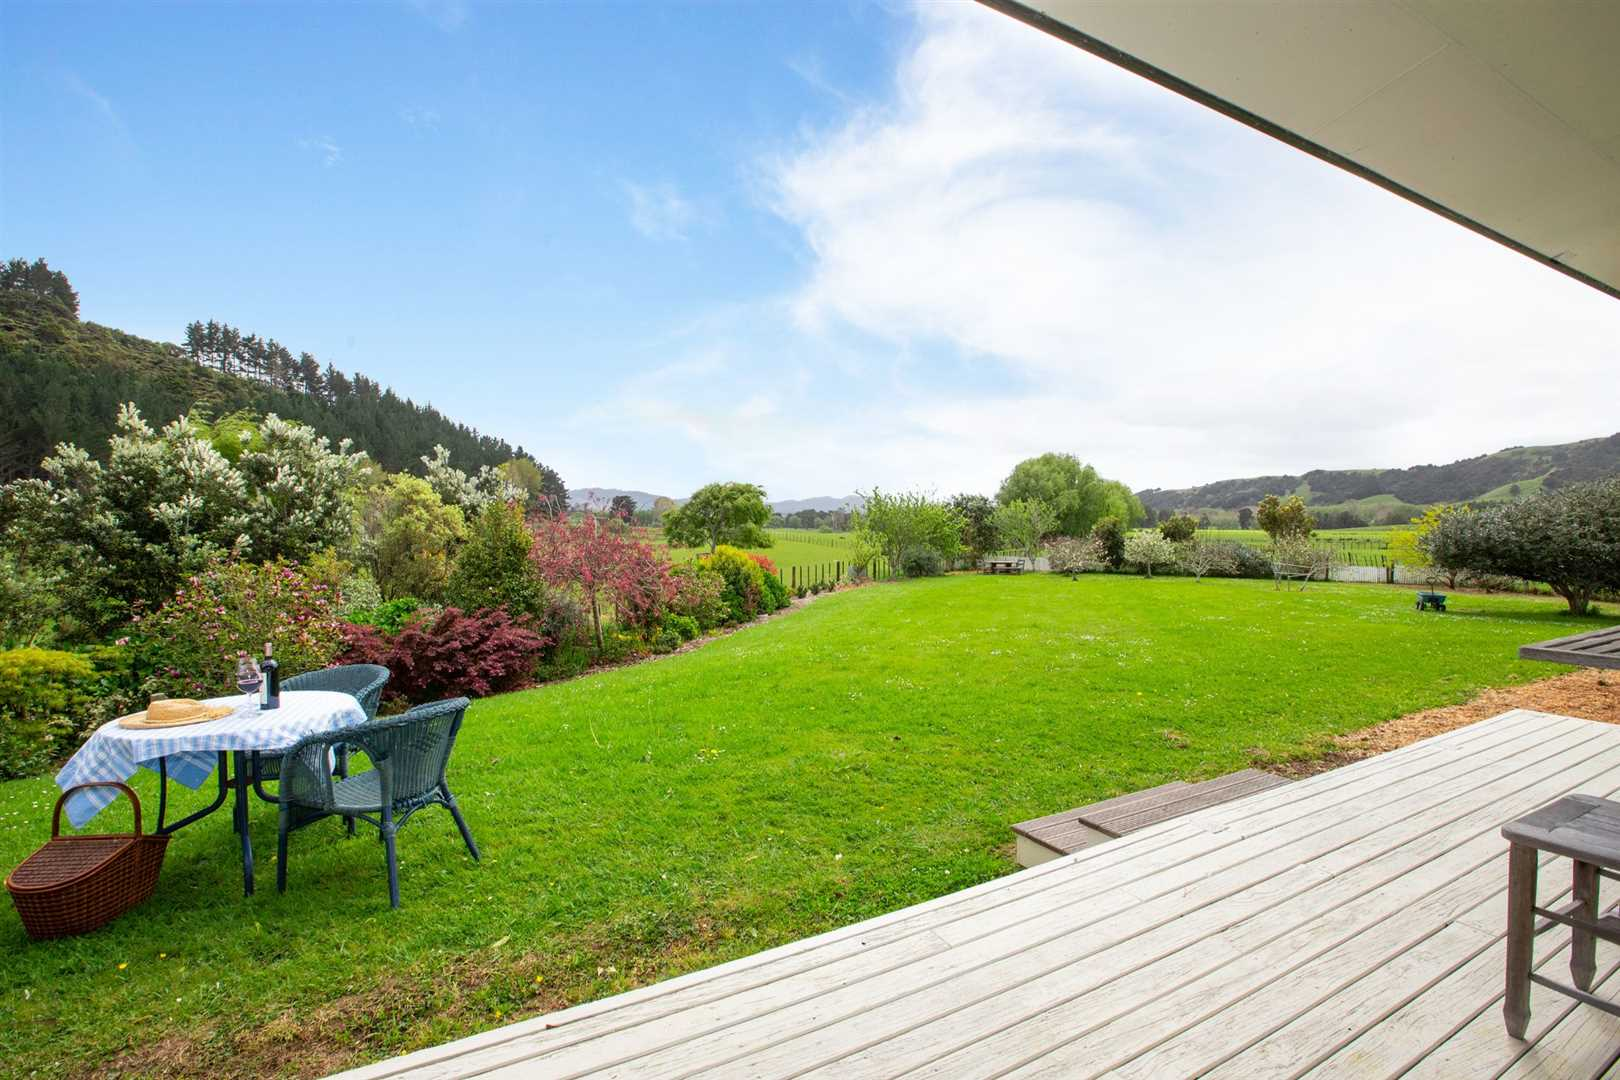 Lovely flat land, lawns and gardens. A place of peace